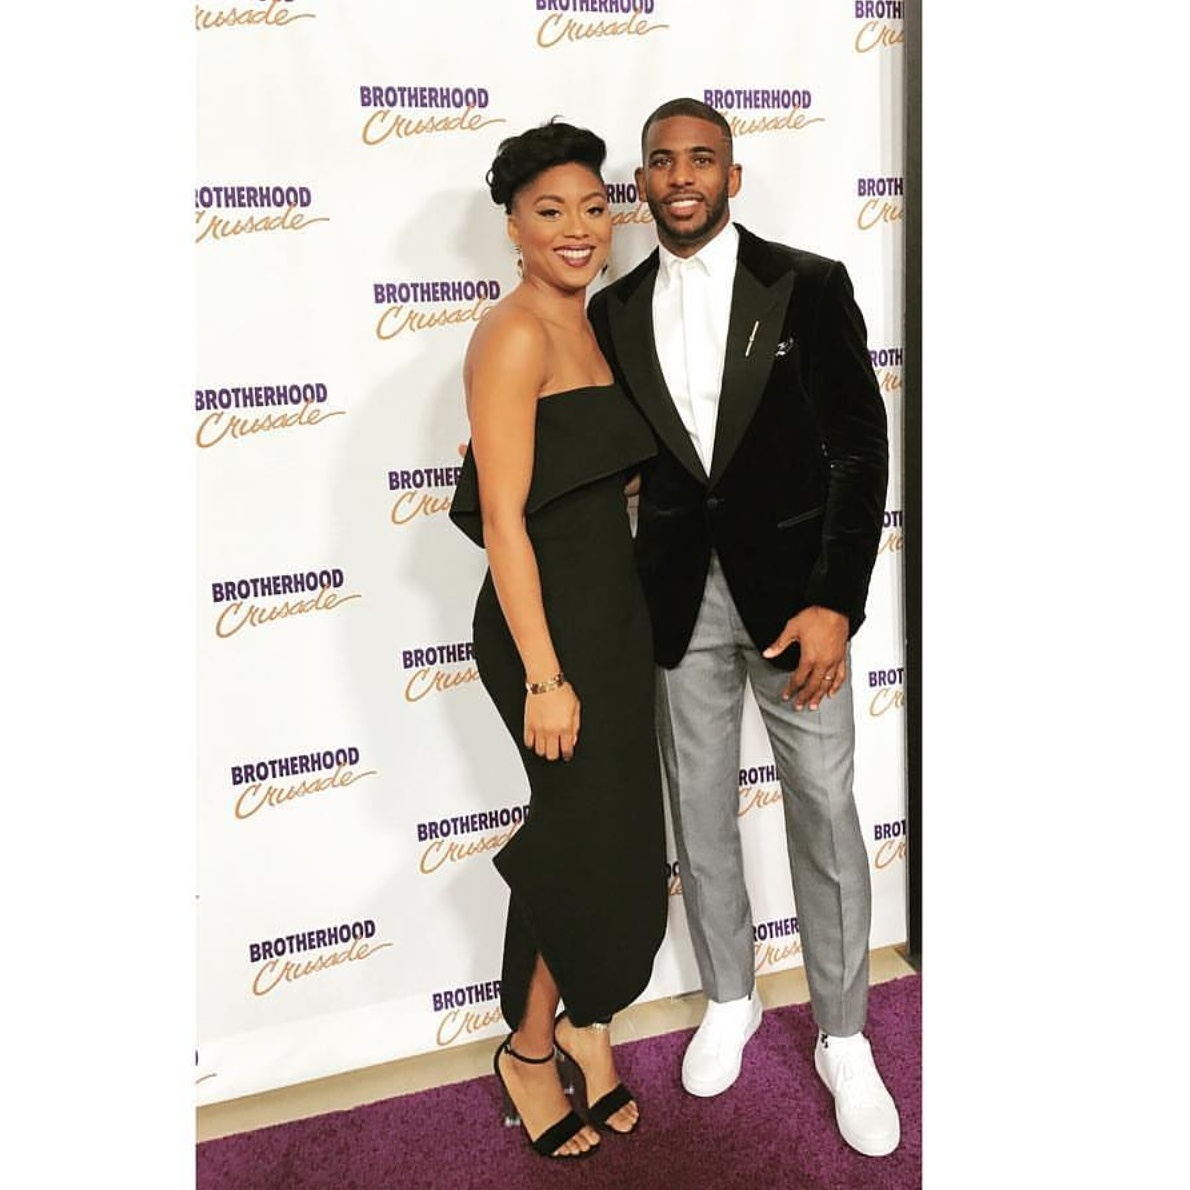 Suits For Men: Chris Paul Wears Tom Ford To Brotherhood Crusade Event